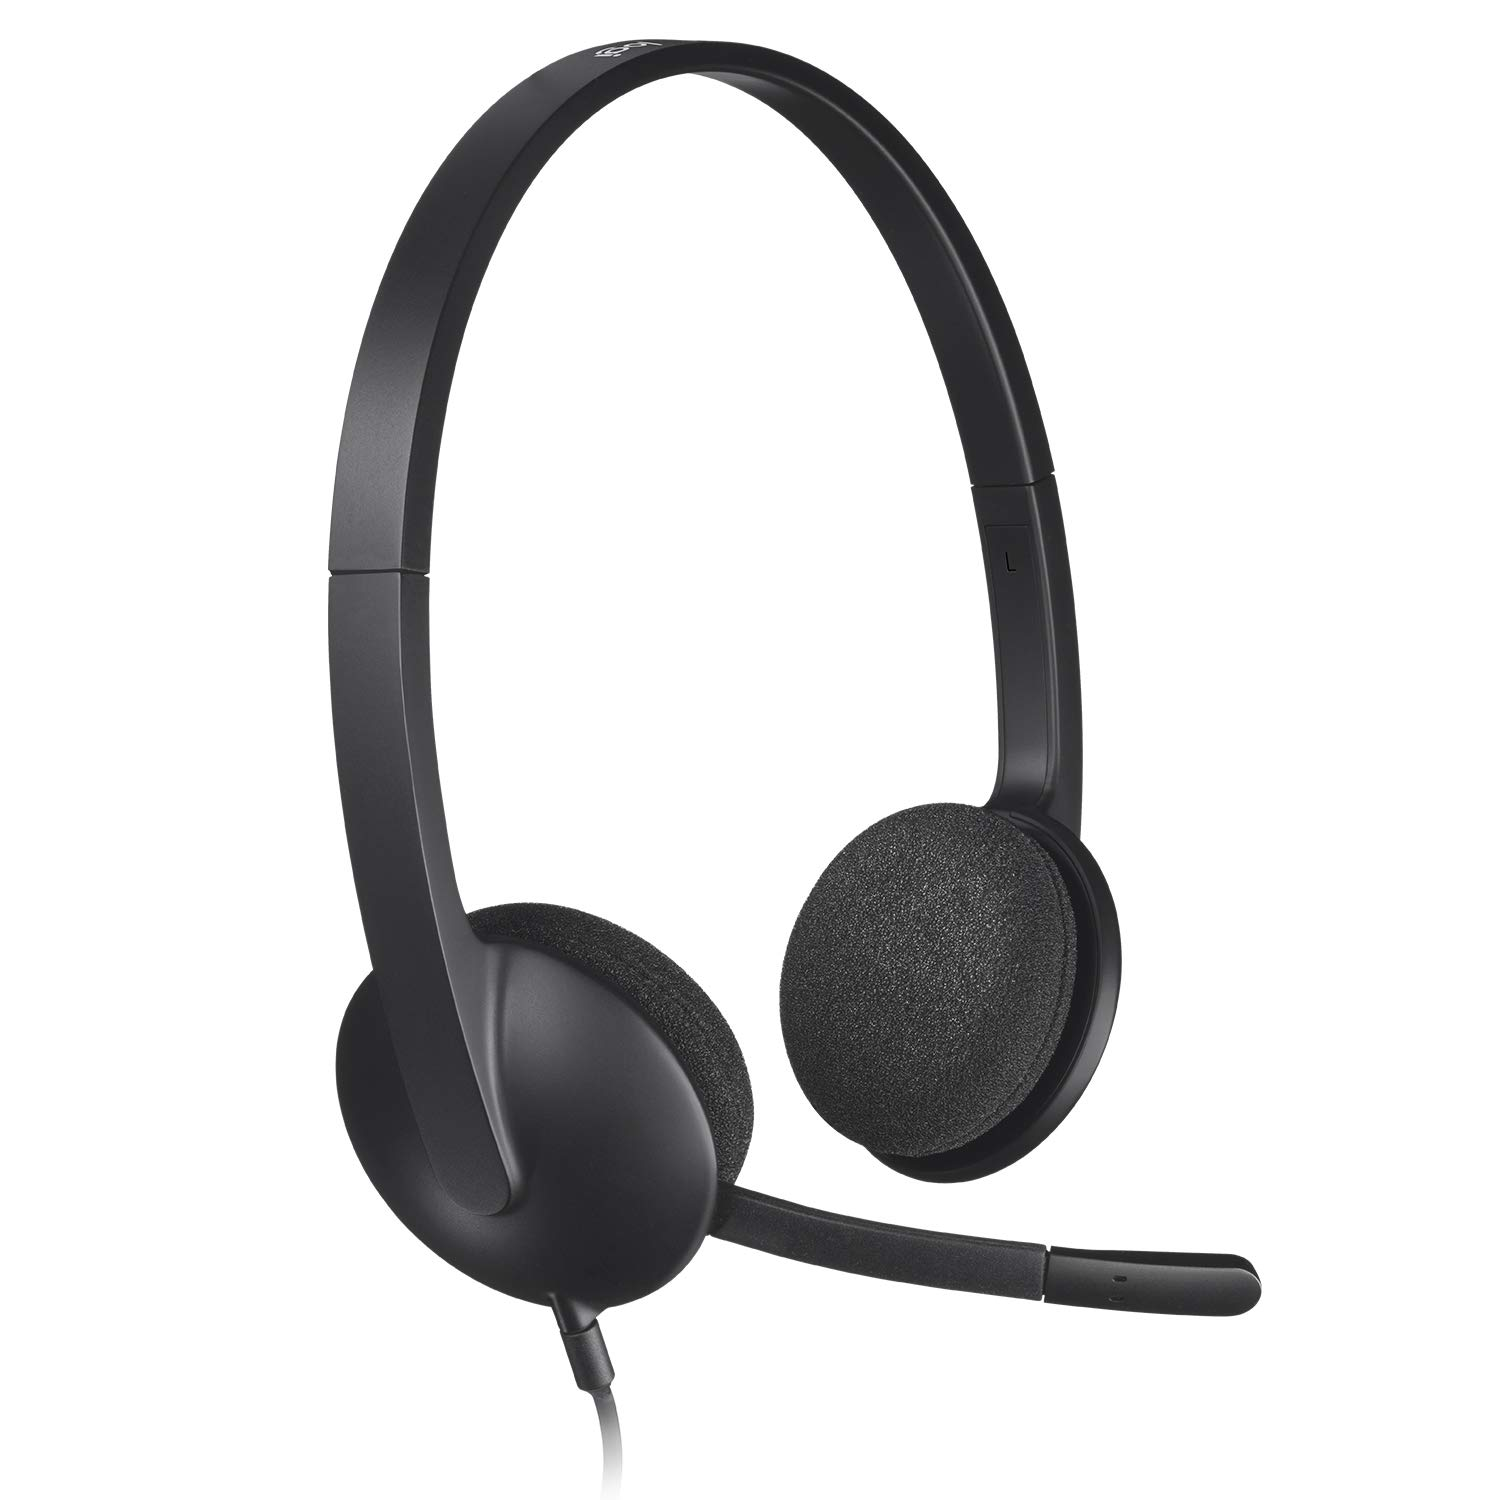 Logitech Clearchat H340 Headset